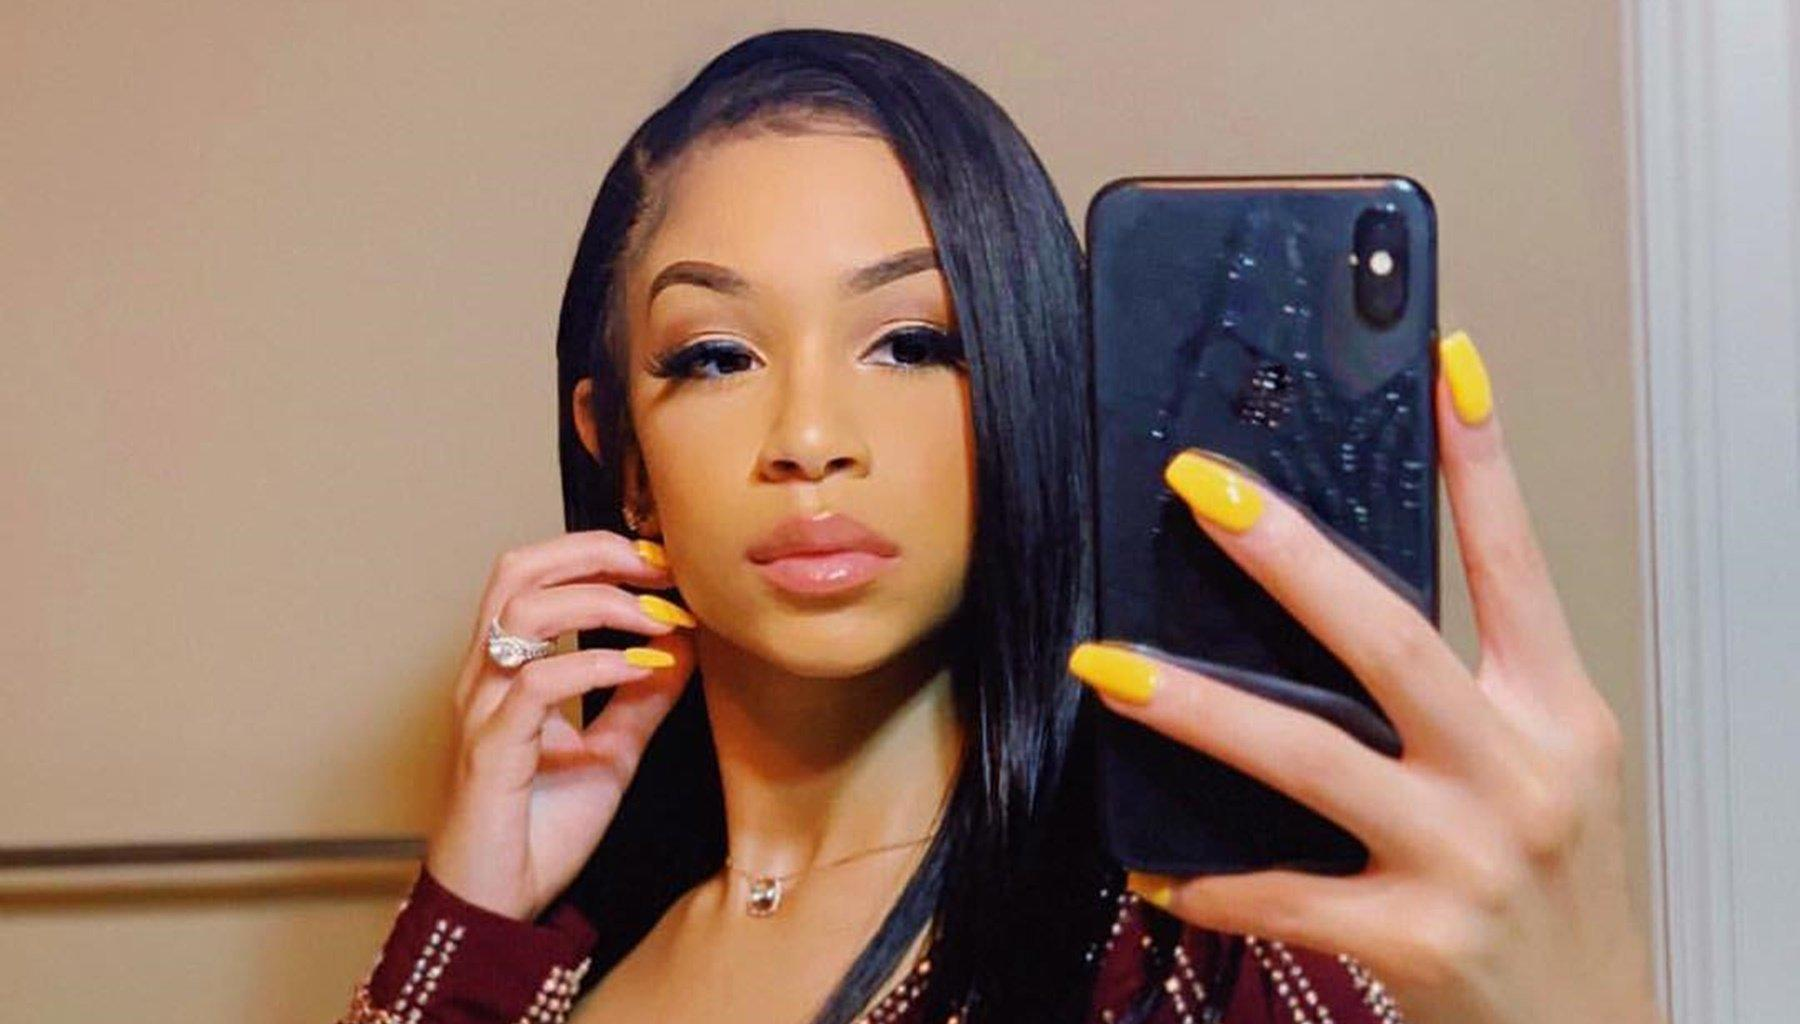 T.I.'s Daughter, Deyjah Harris' Dramatic Change Makes Fans Happy - See The Videos